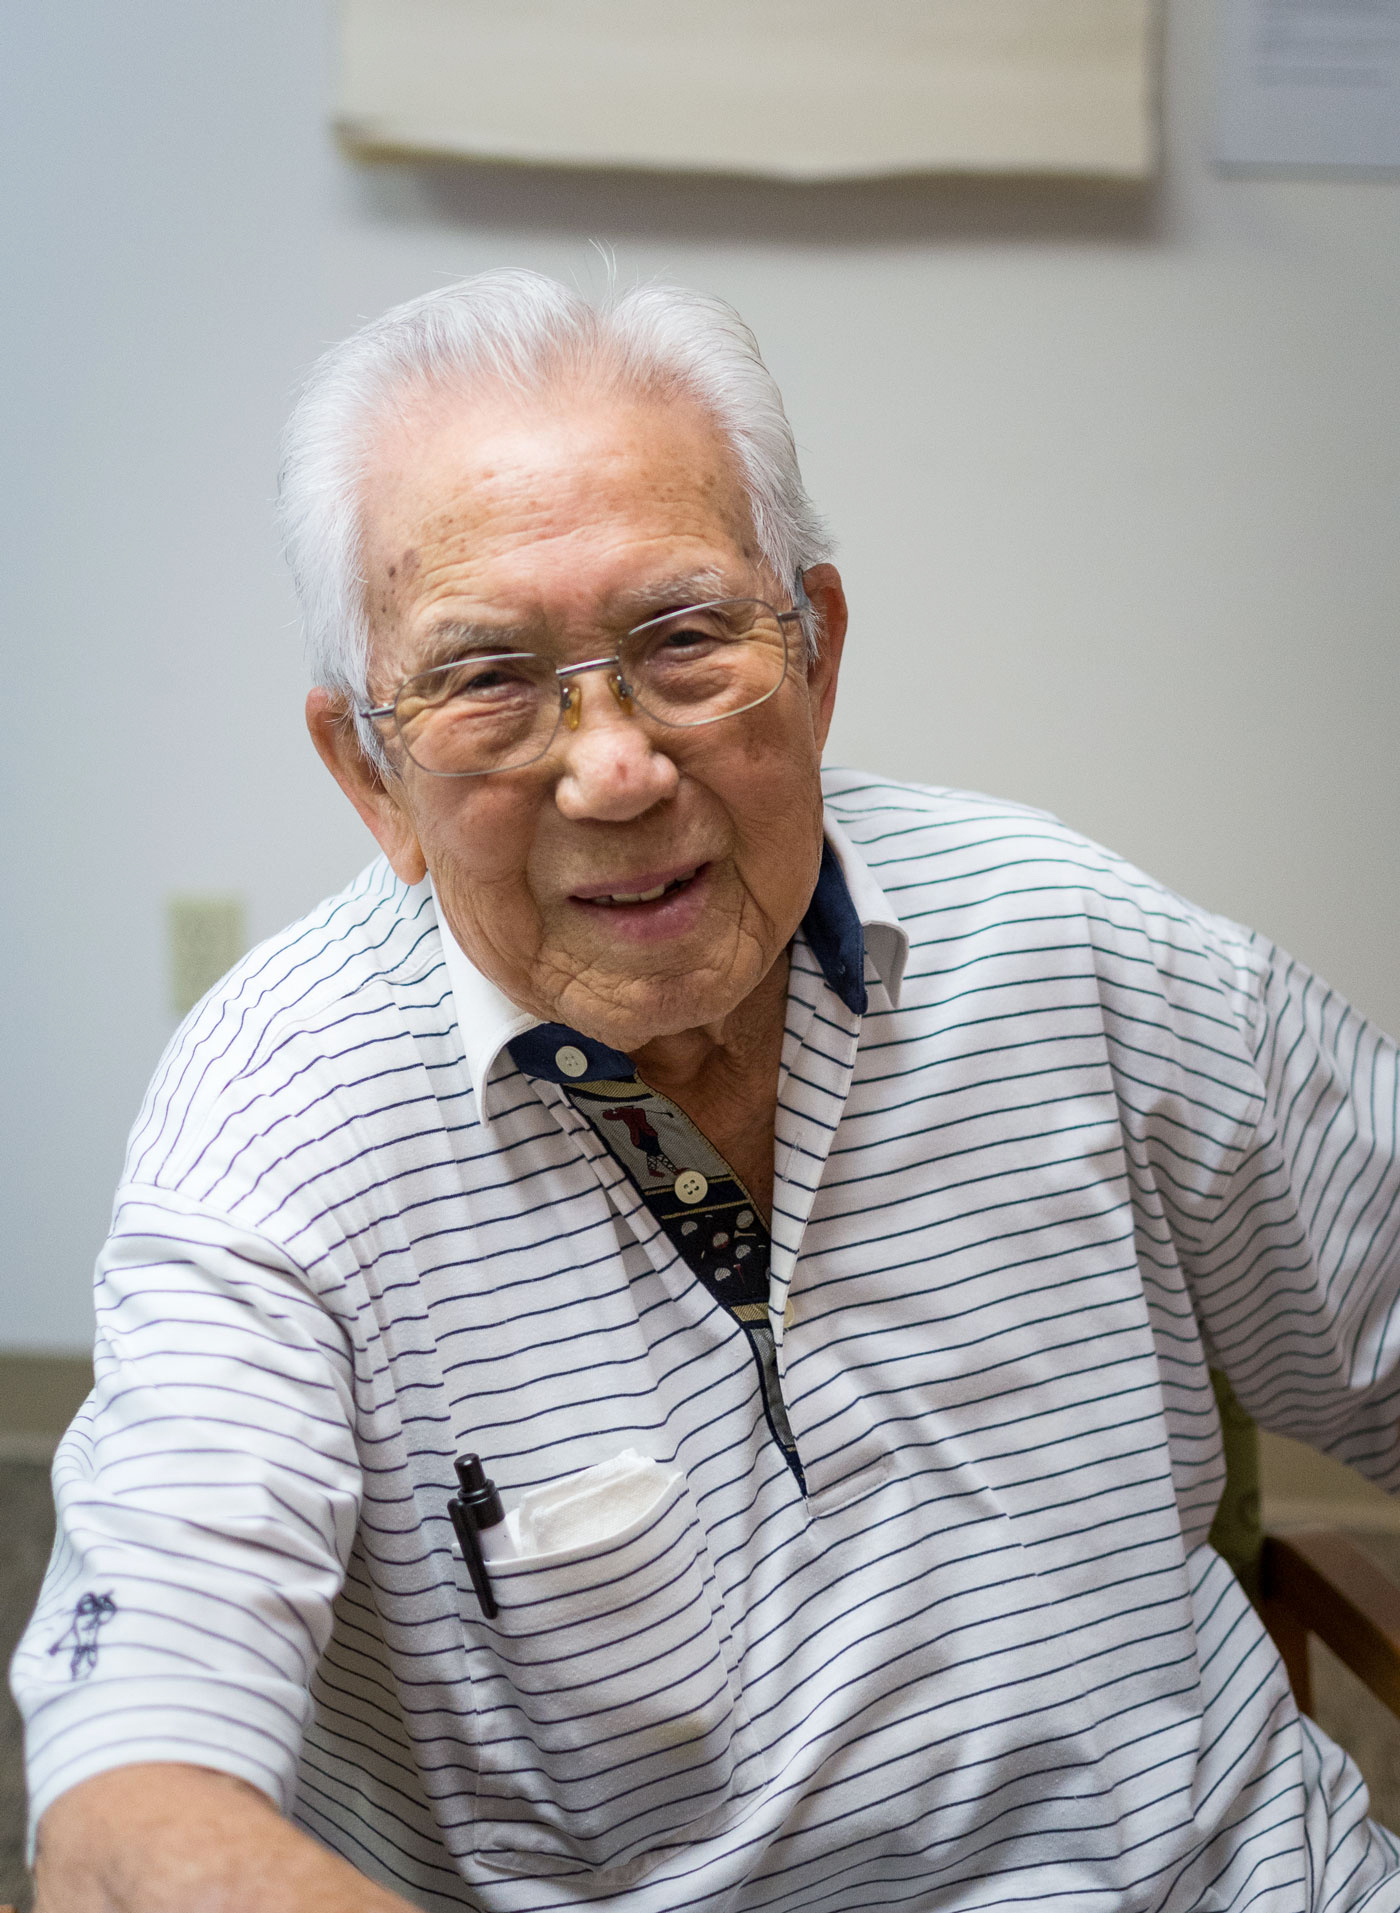 Joe Mizufuka - born May 19, 1921